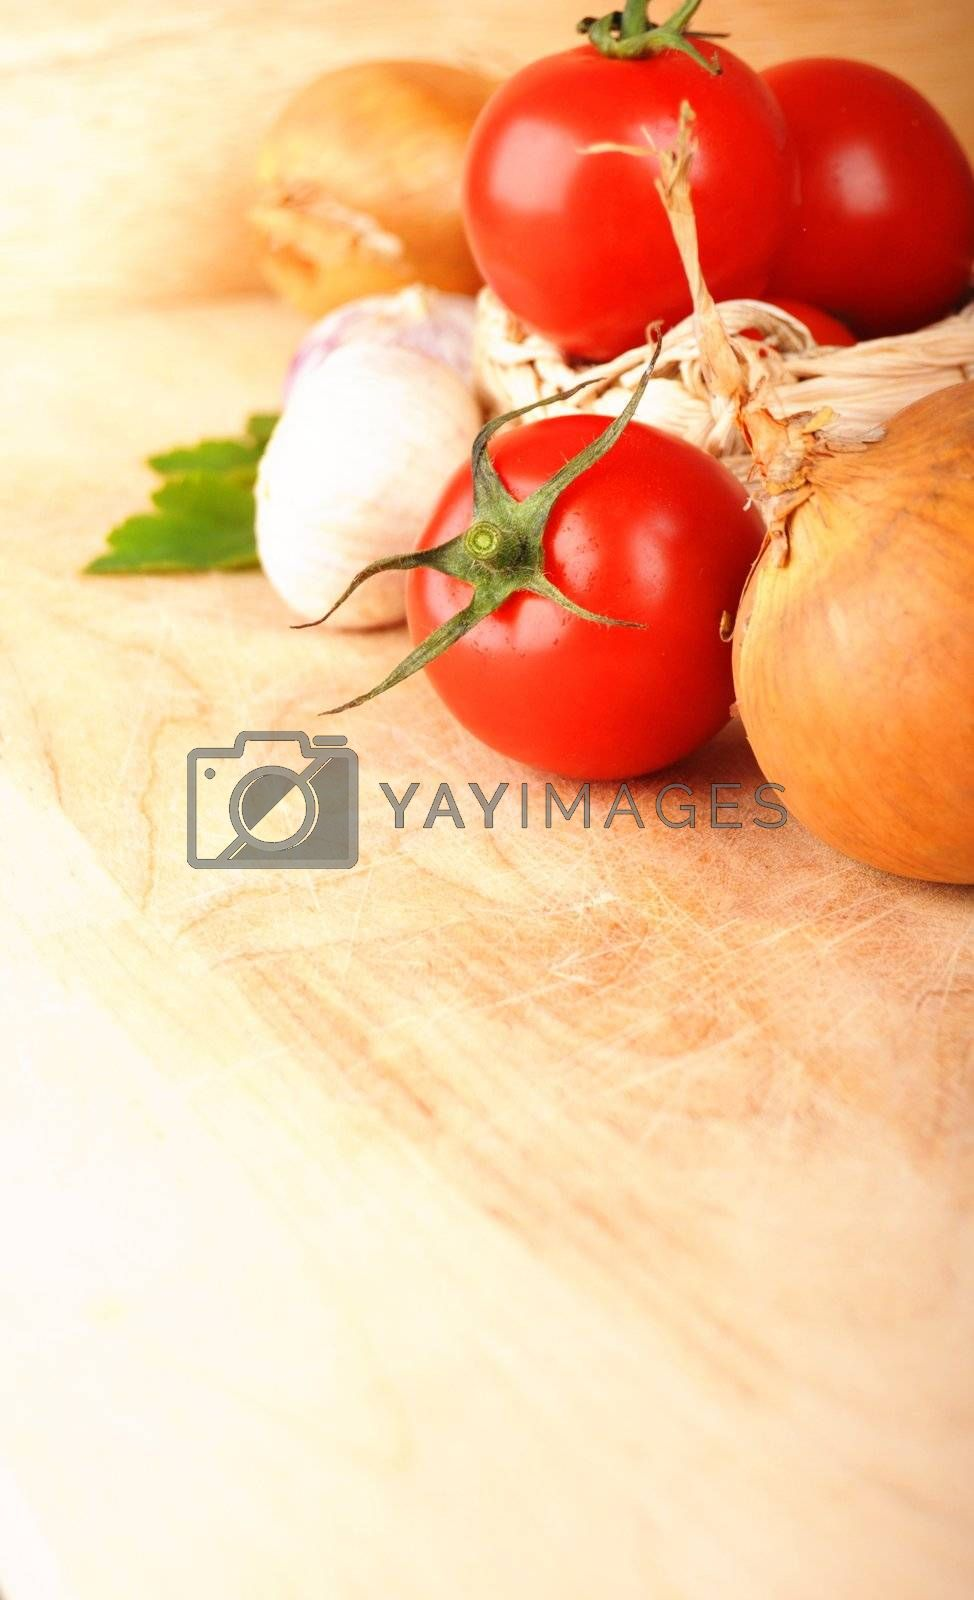 tomatoes garlic and other vegetables in kitchen showing healthy food concept